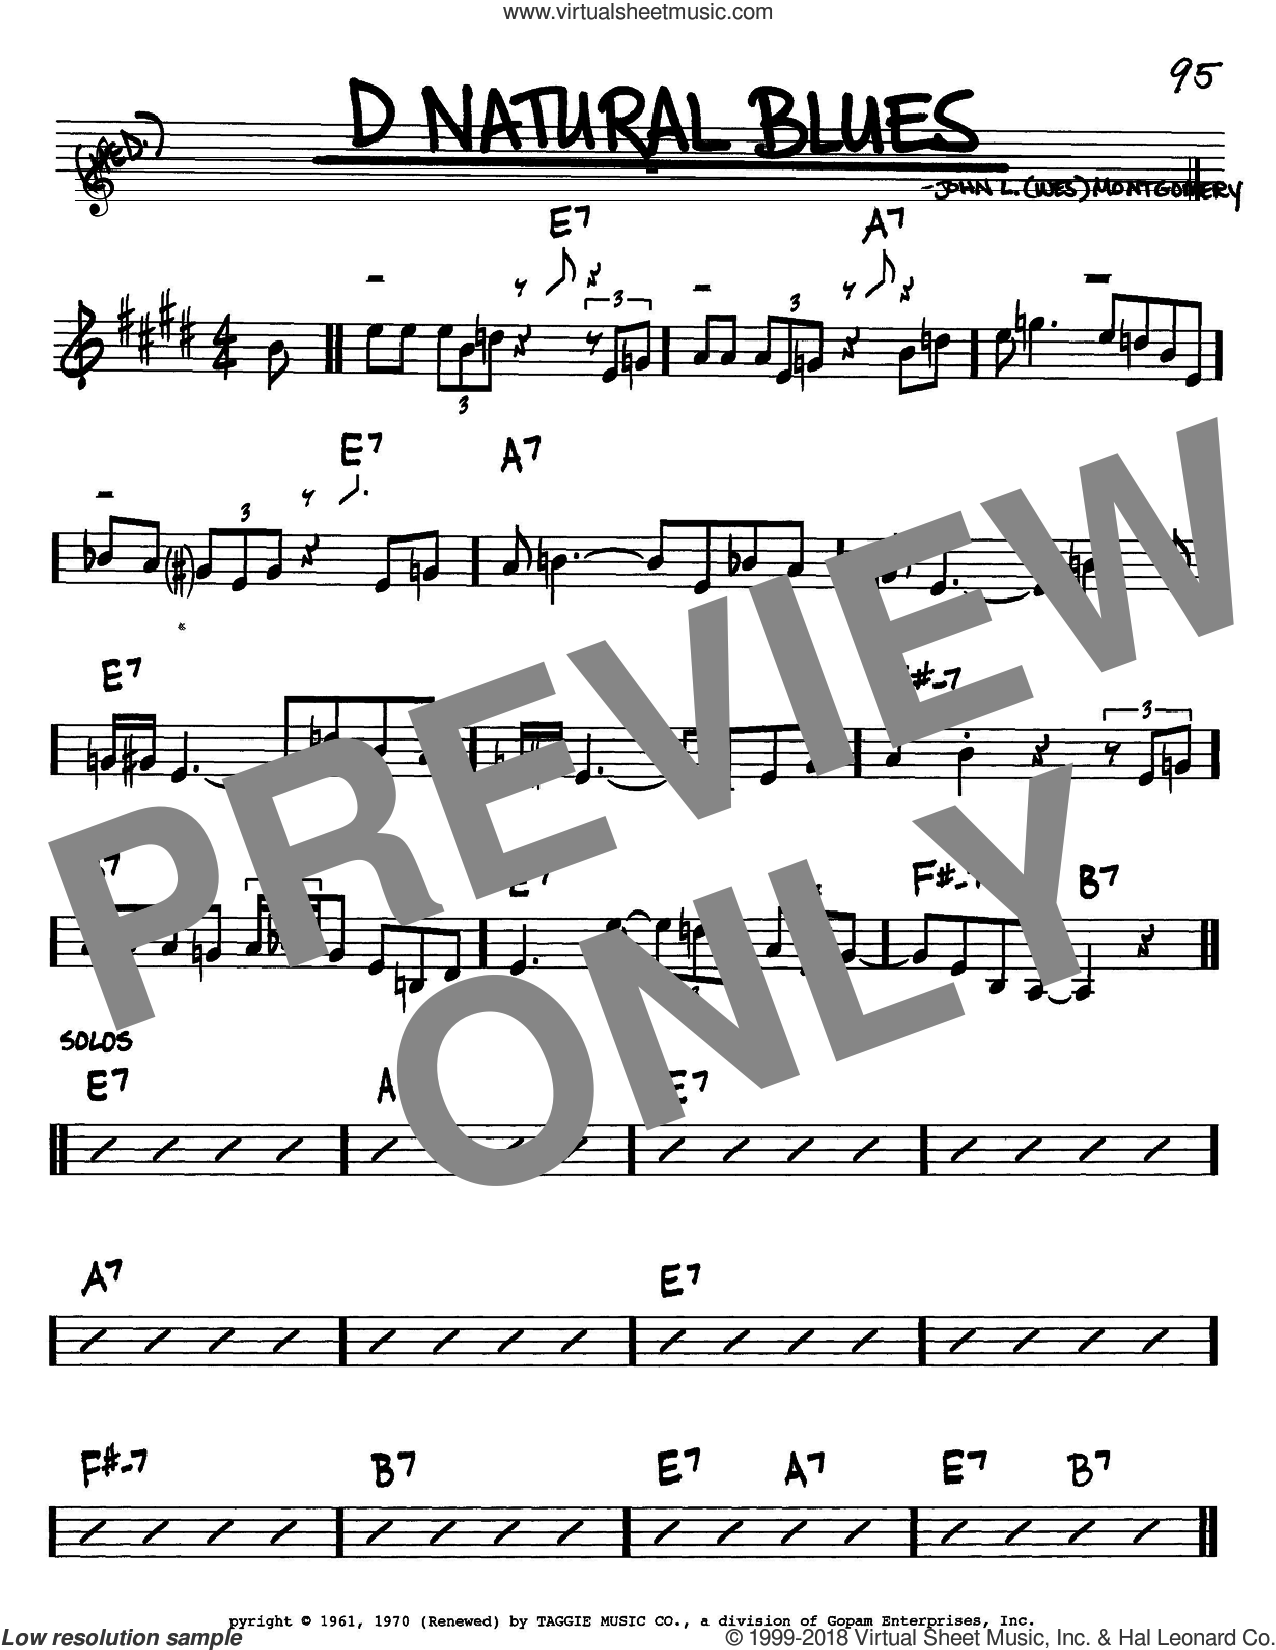 D Natural Blues sheet music for voice and other instruments (Bb) by Wes Montgomery. Score Image Preview.